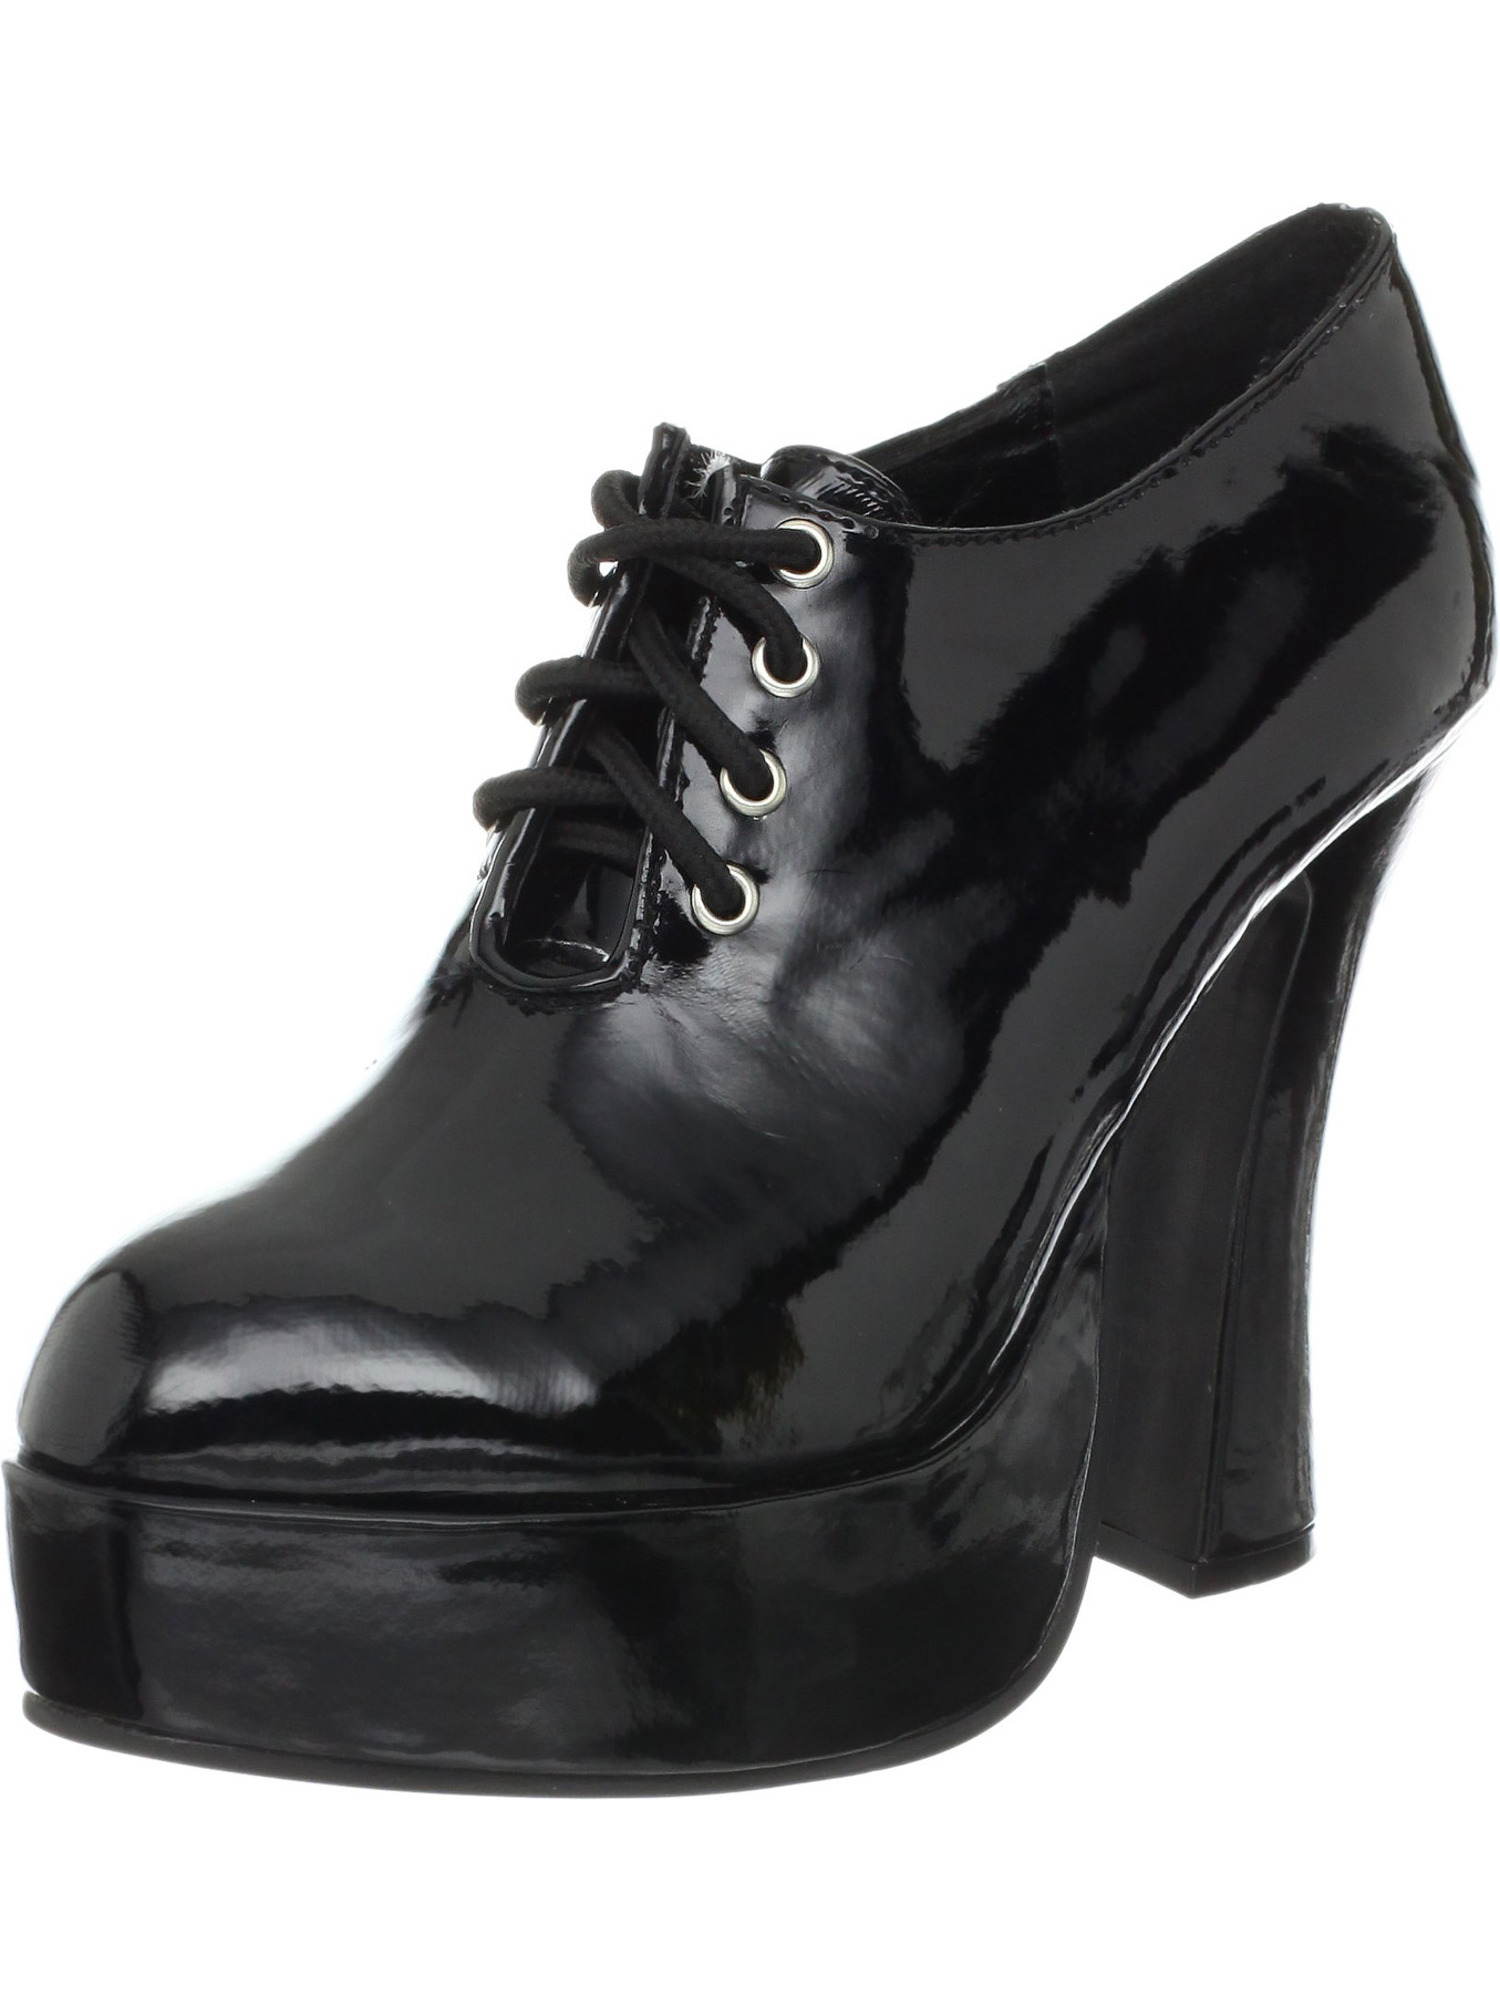 5.5 Inch Womens Sexy Chunky Heel Shoes Mid Platform Lace Up Oxford